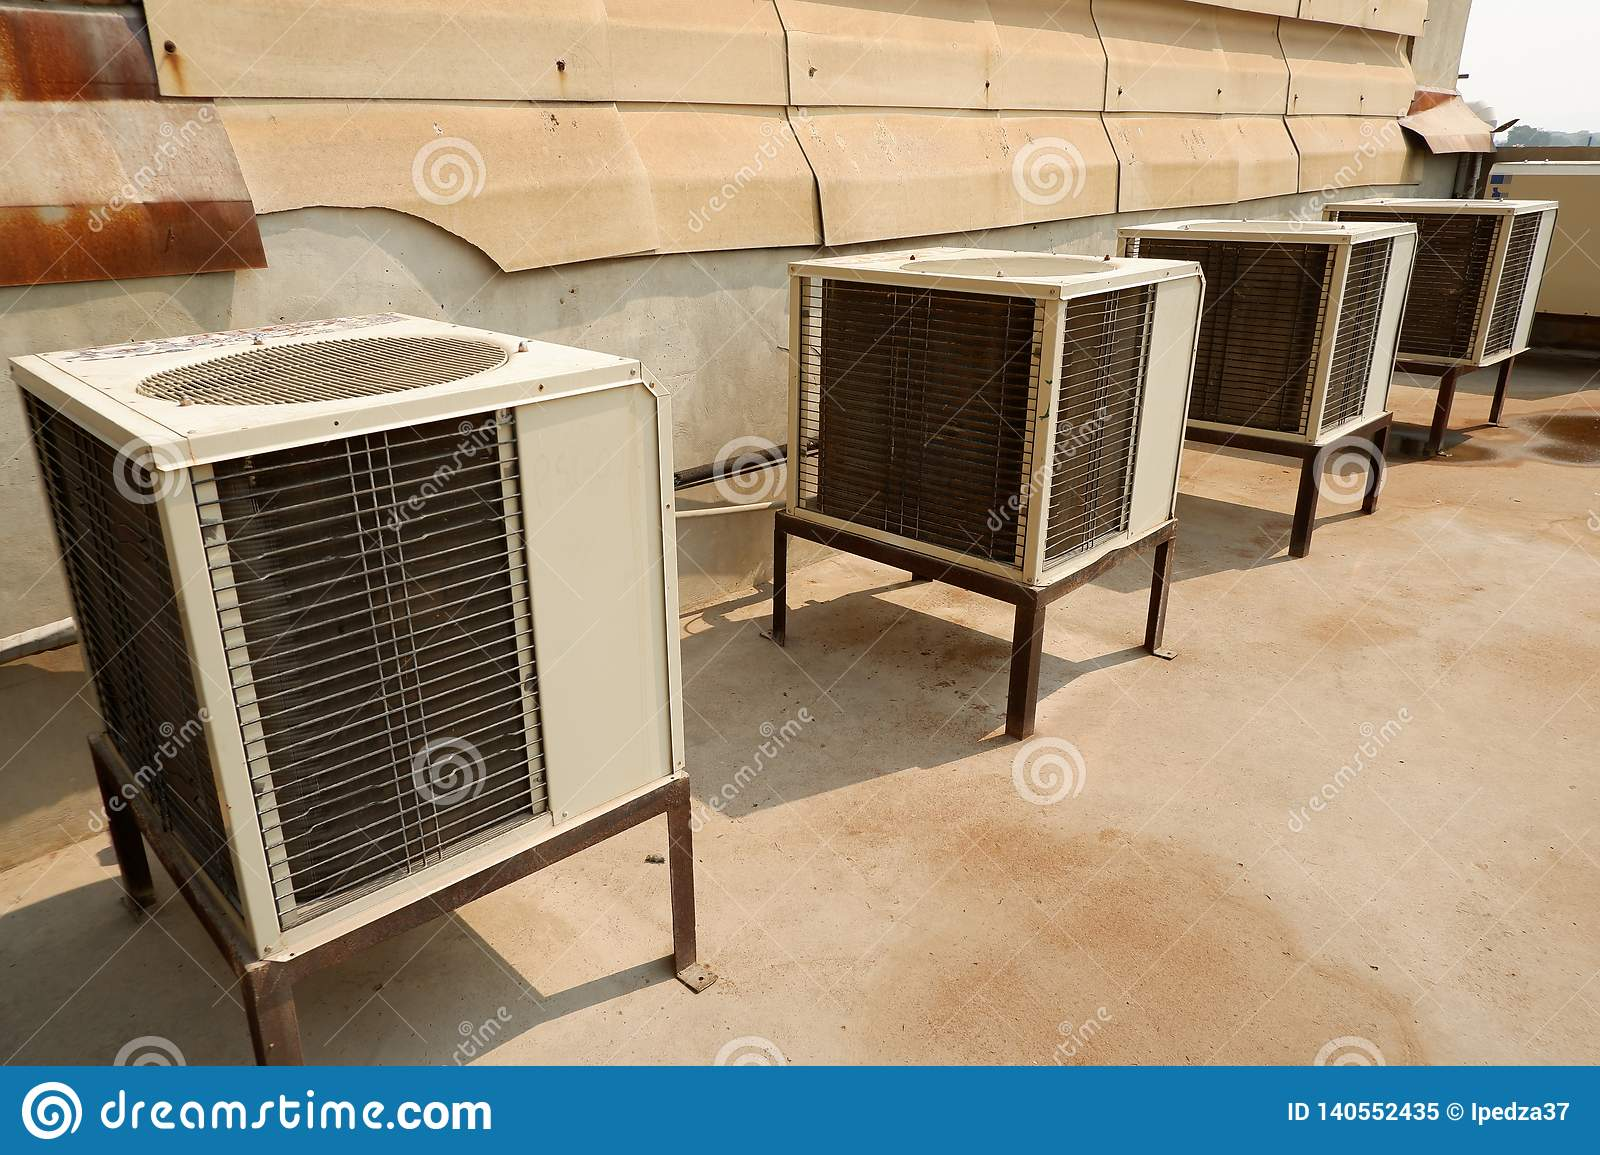 Air conditioning compressor Old white and dirty air conditioning units